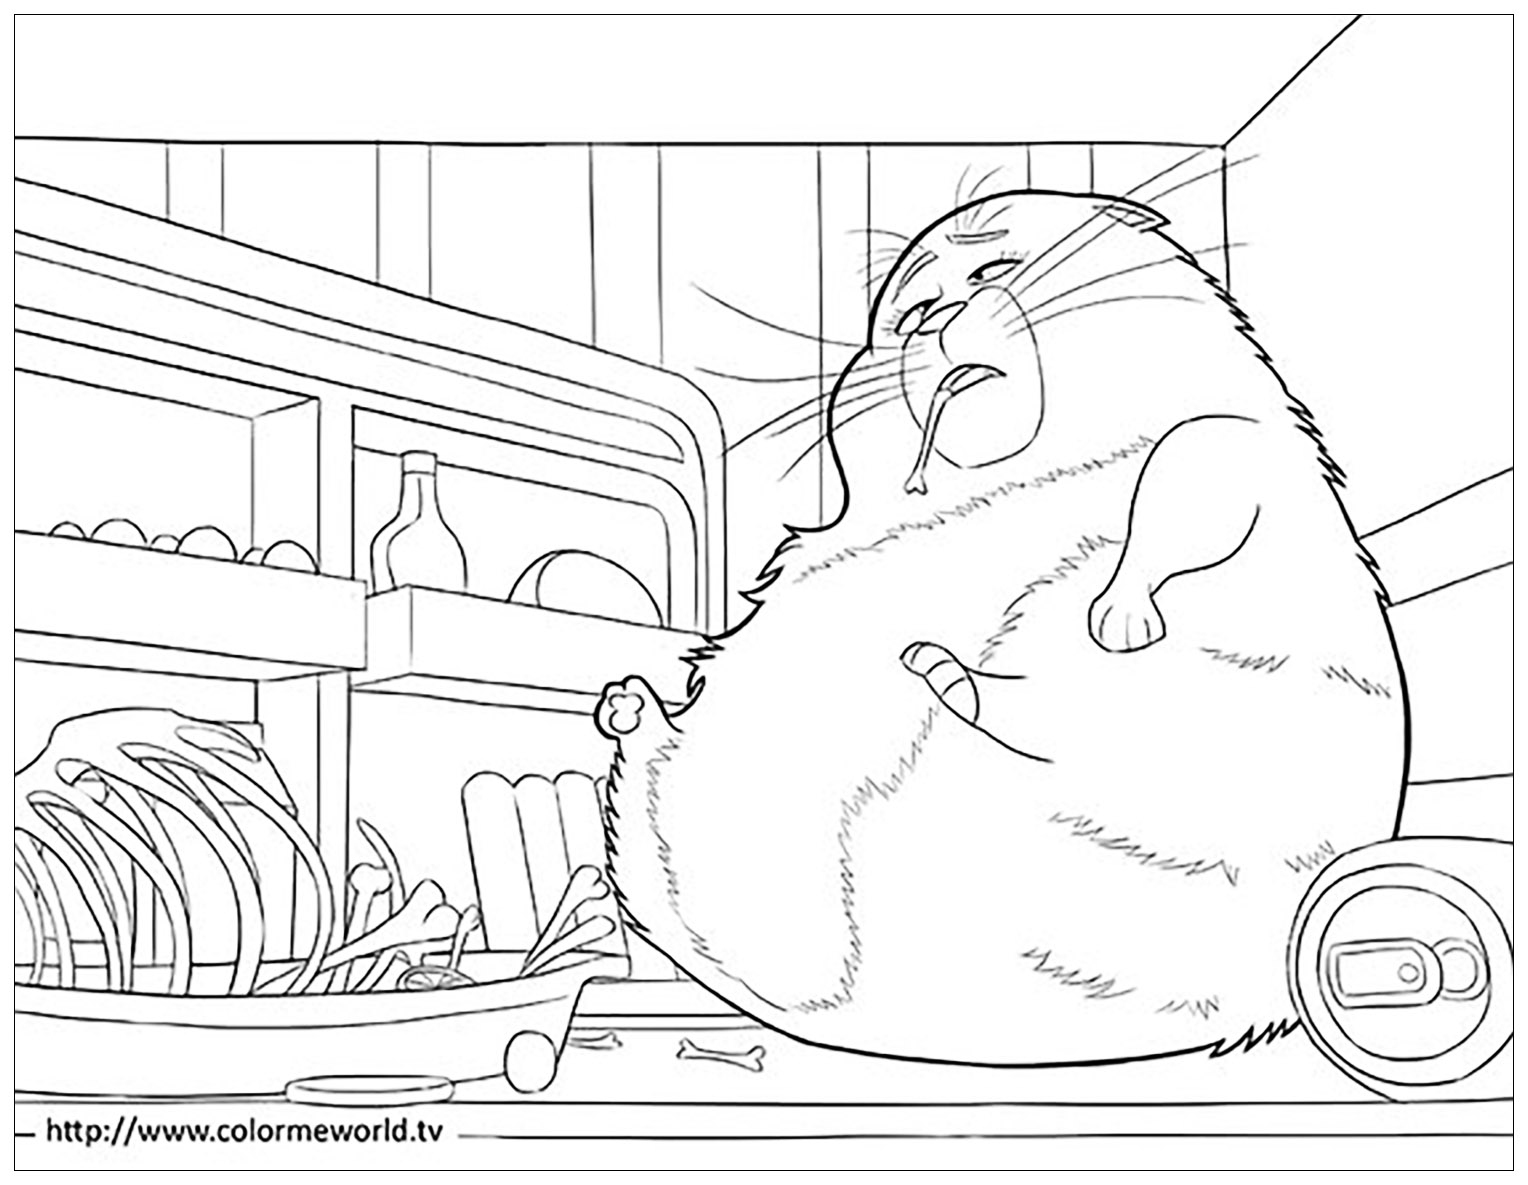 The Secret Life of Pets coloring page to print and color